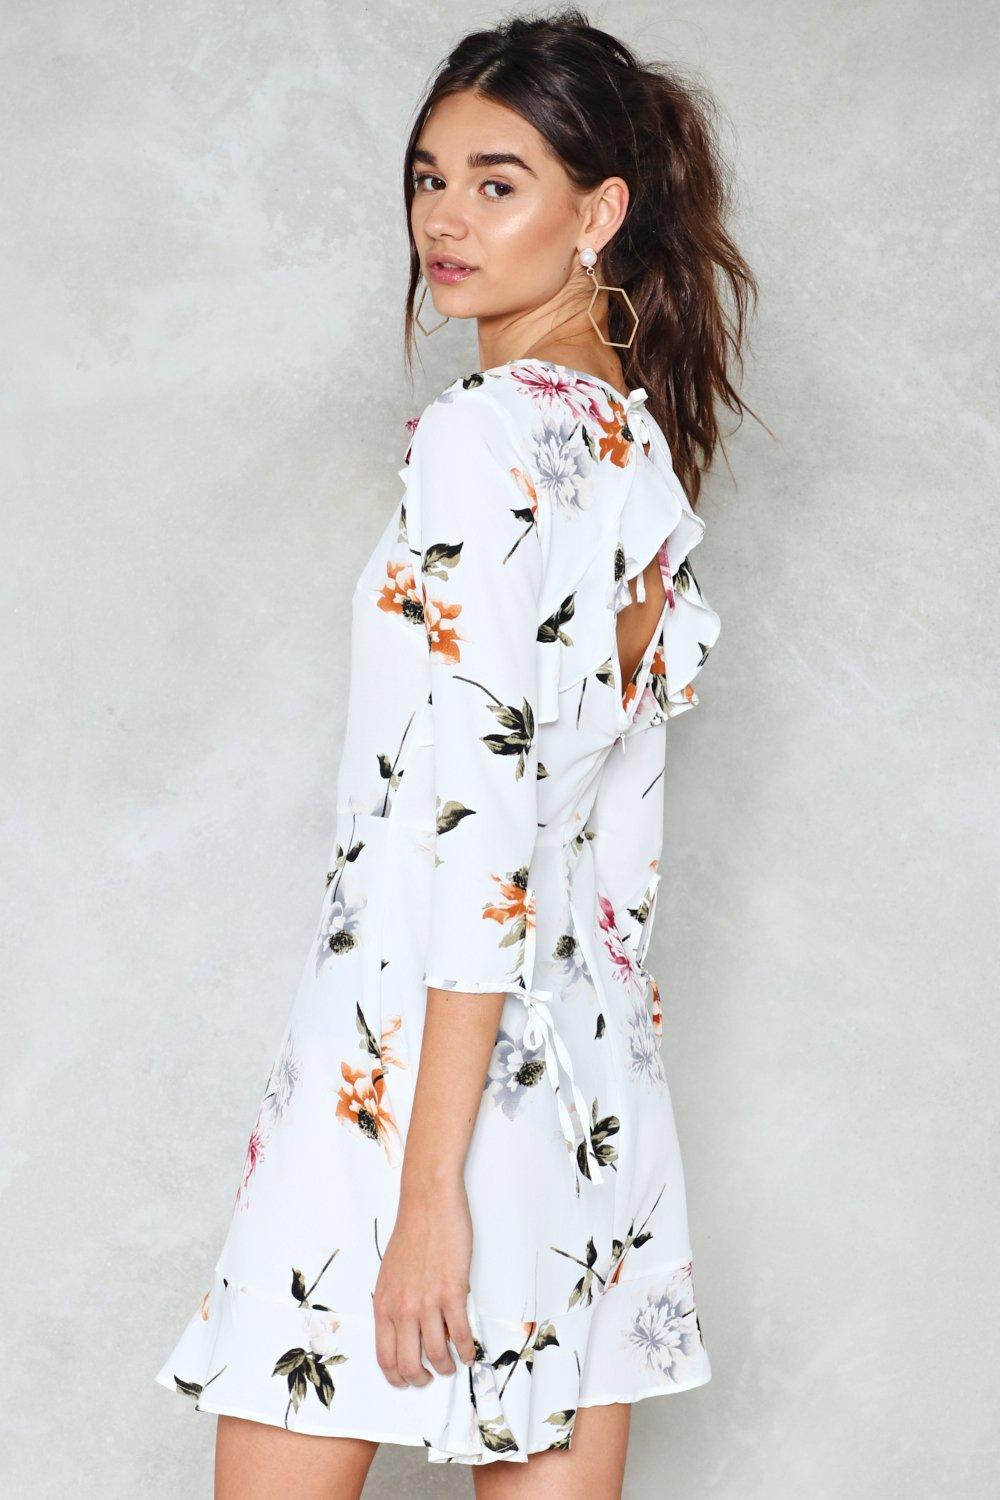 floral summer dressother dressesdressesss